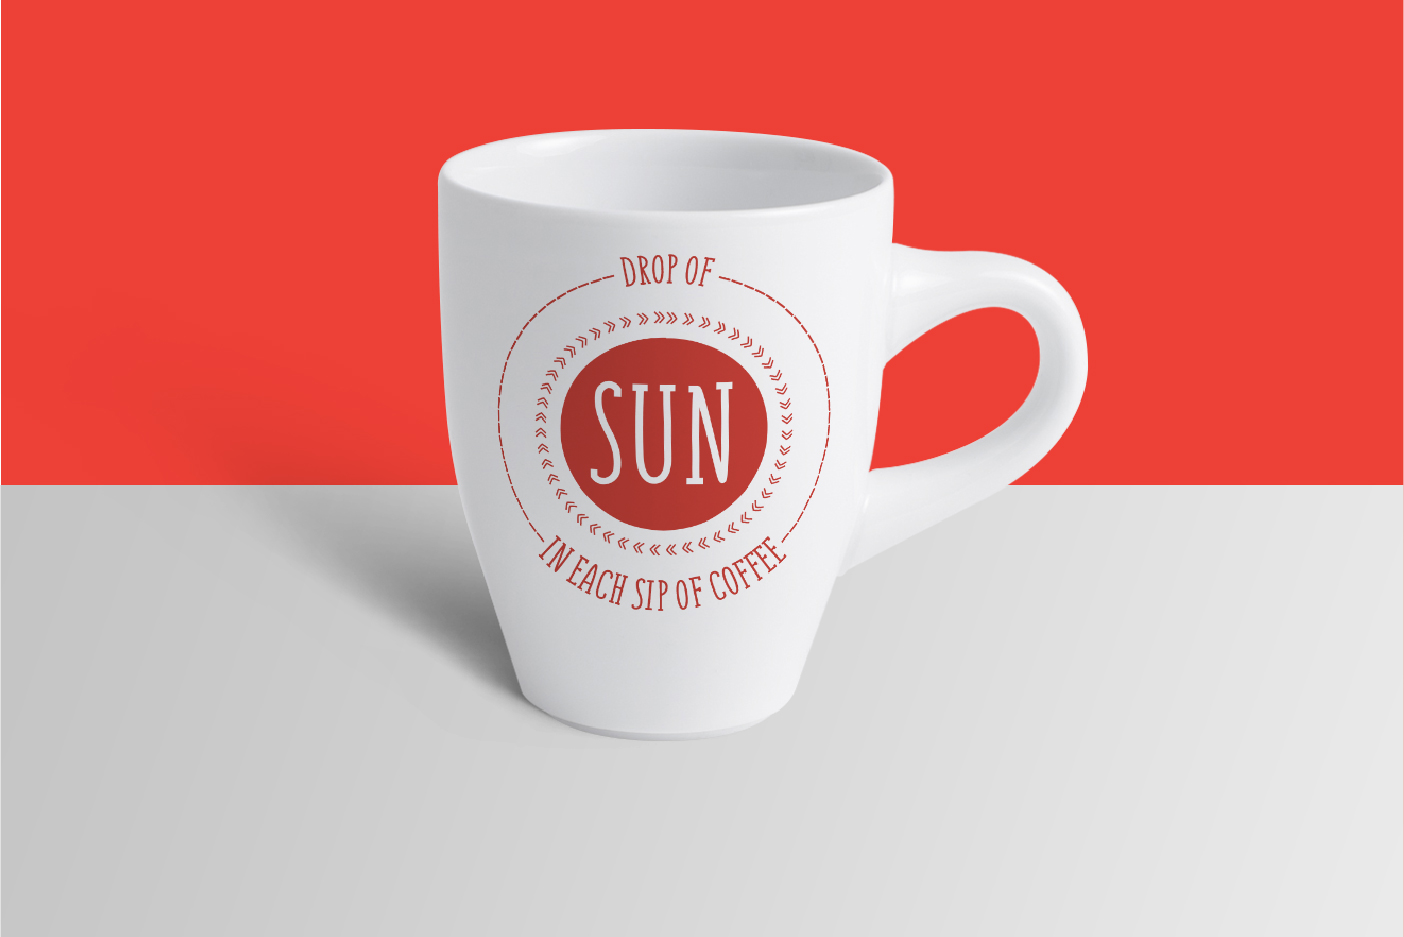 SUNN Serif Line Caps Only Font example image 5